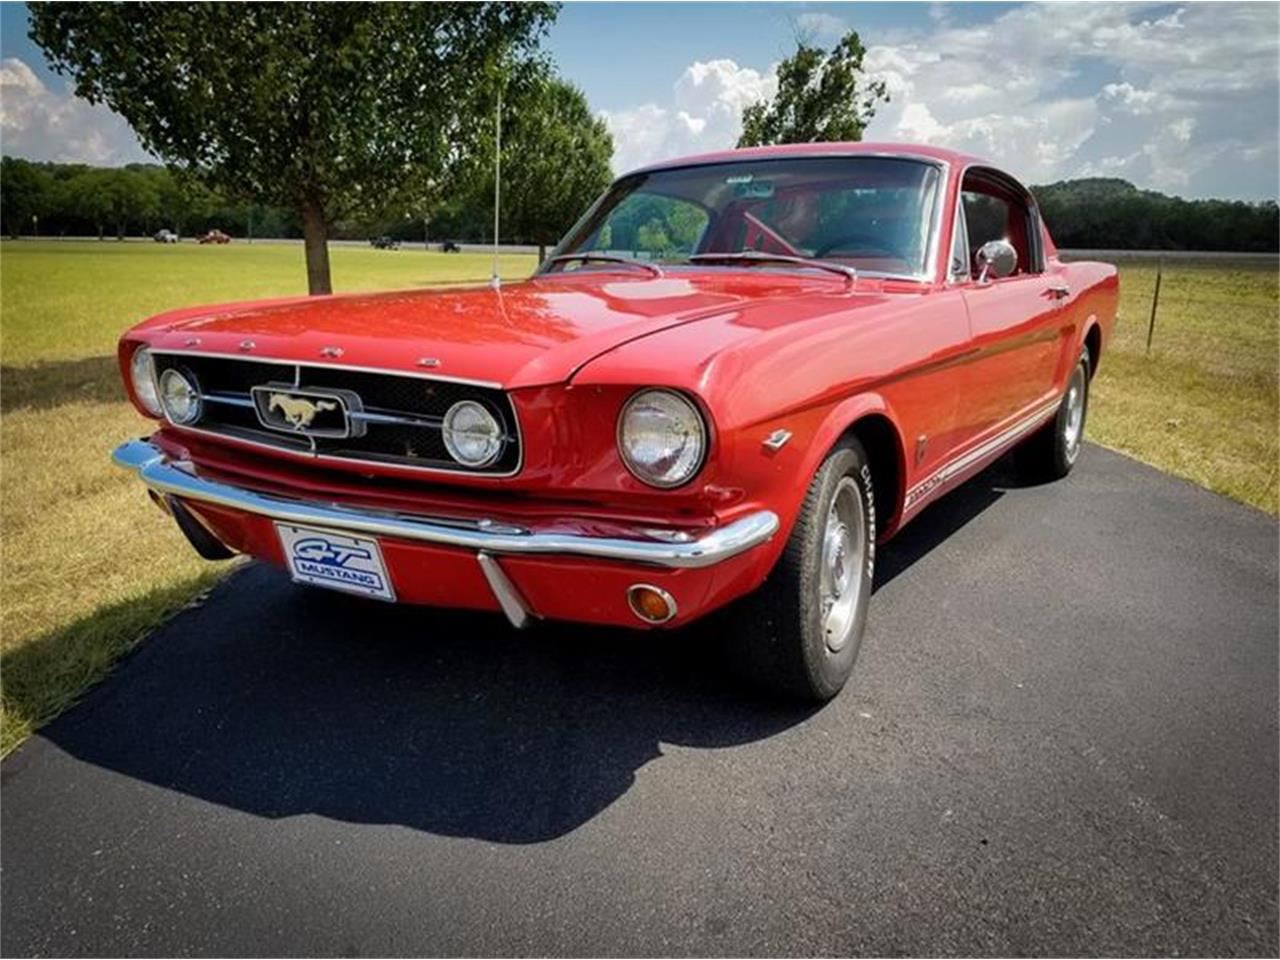 Large Picture of '65 Mustang located in Fredericksburg Texas - $38,500.00 - NRRS